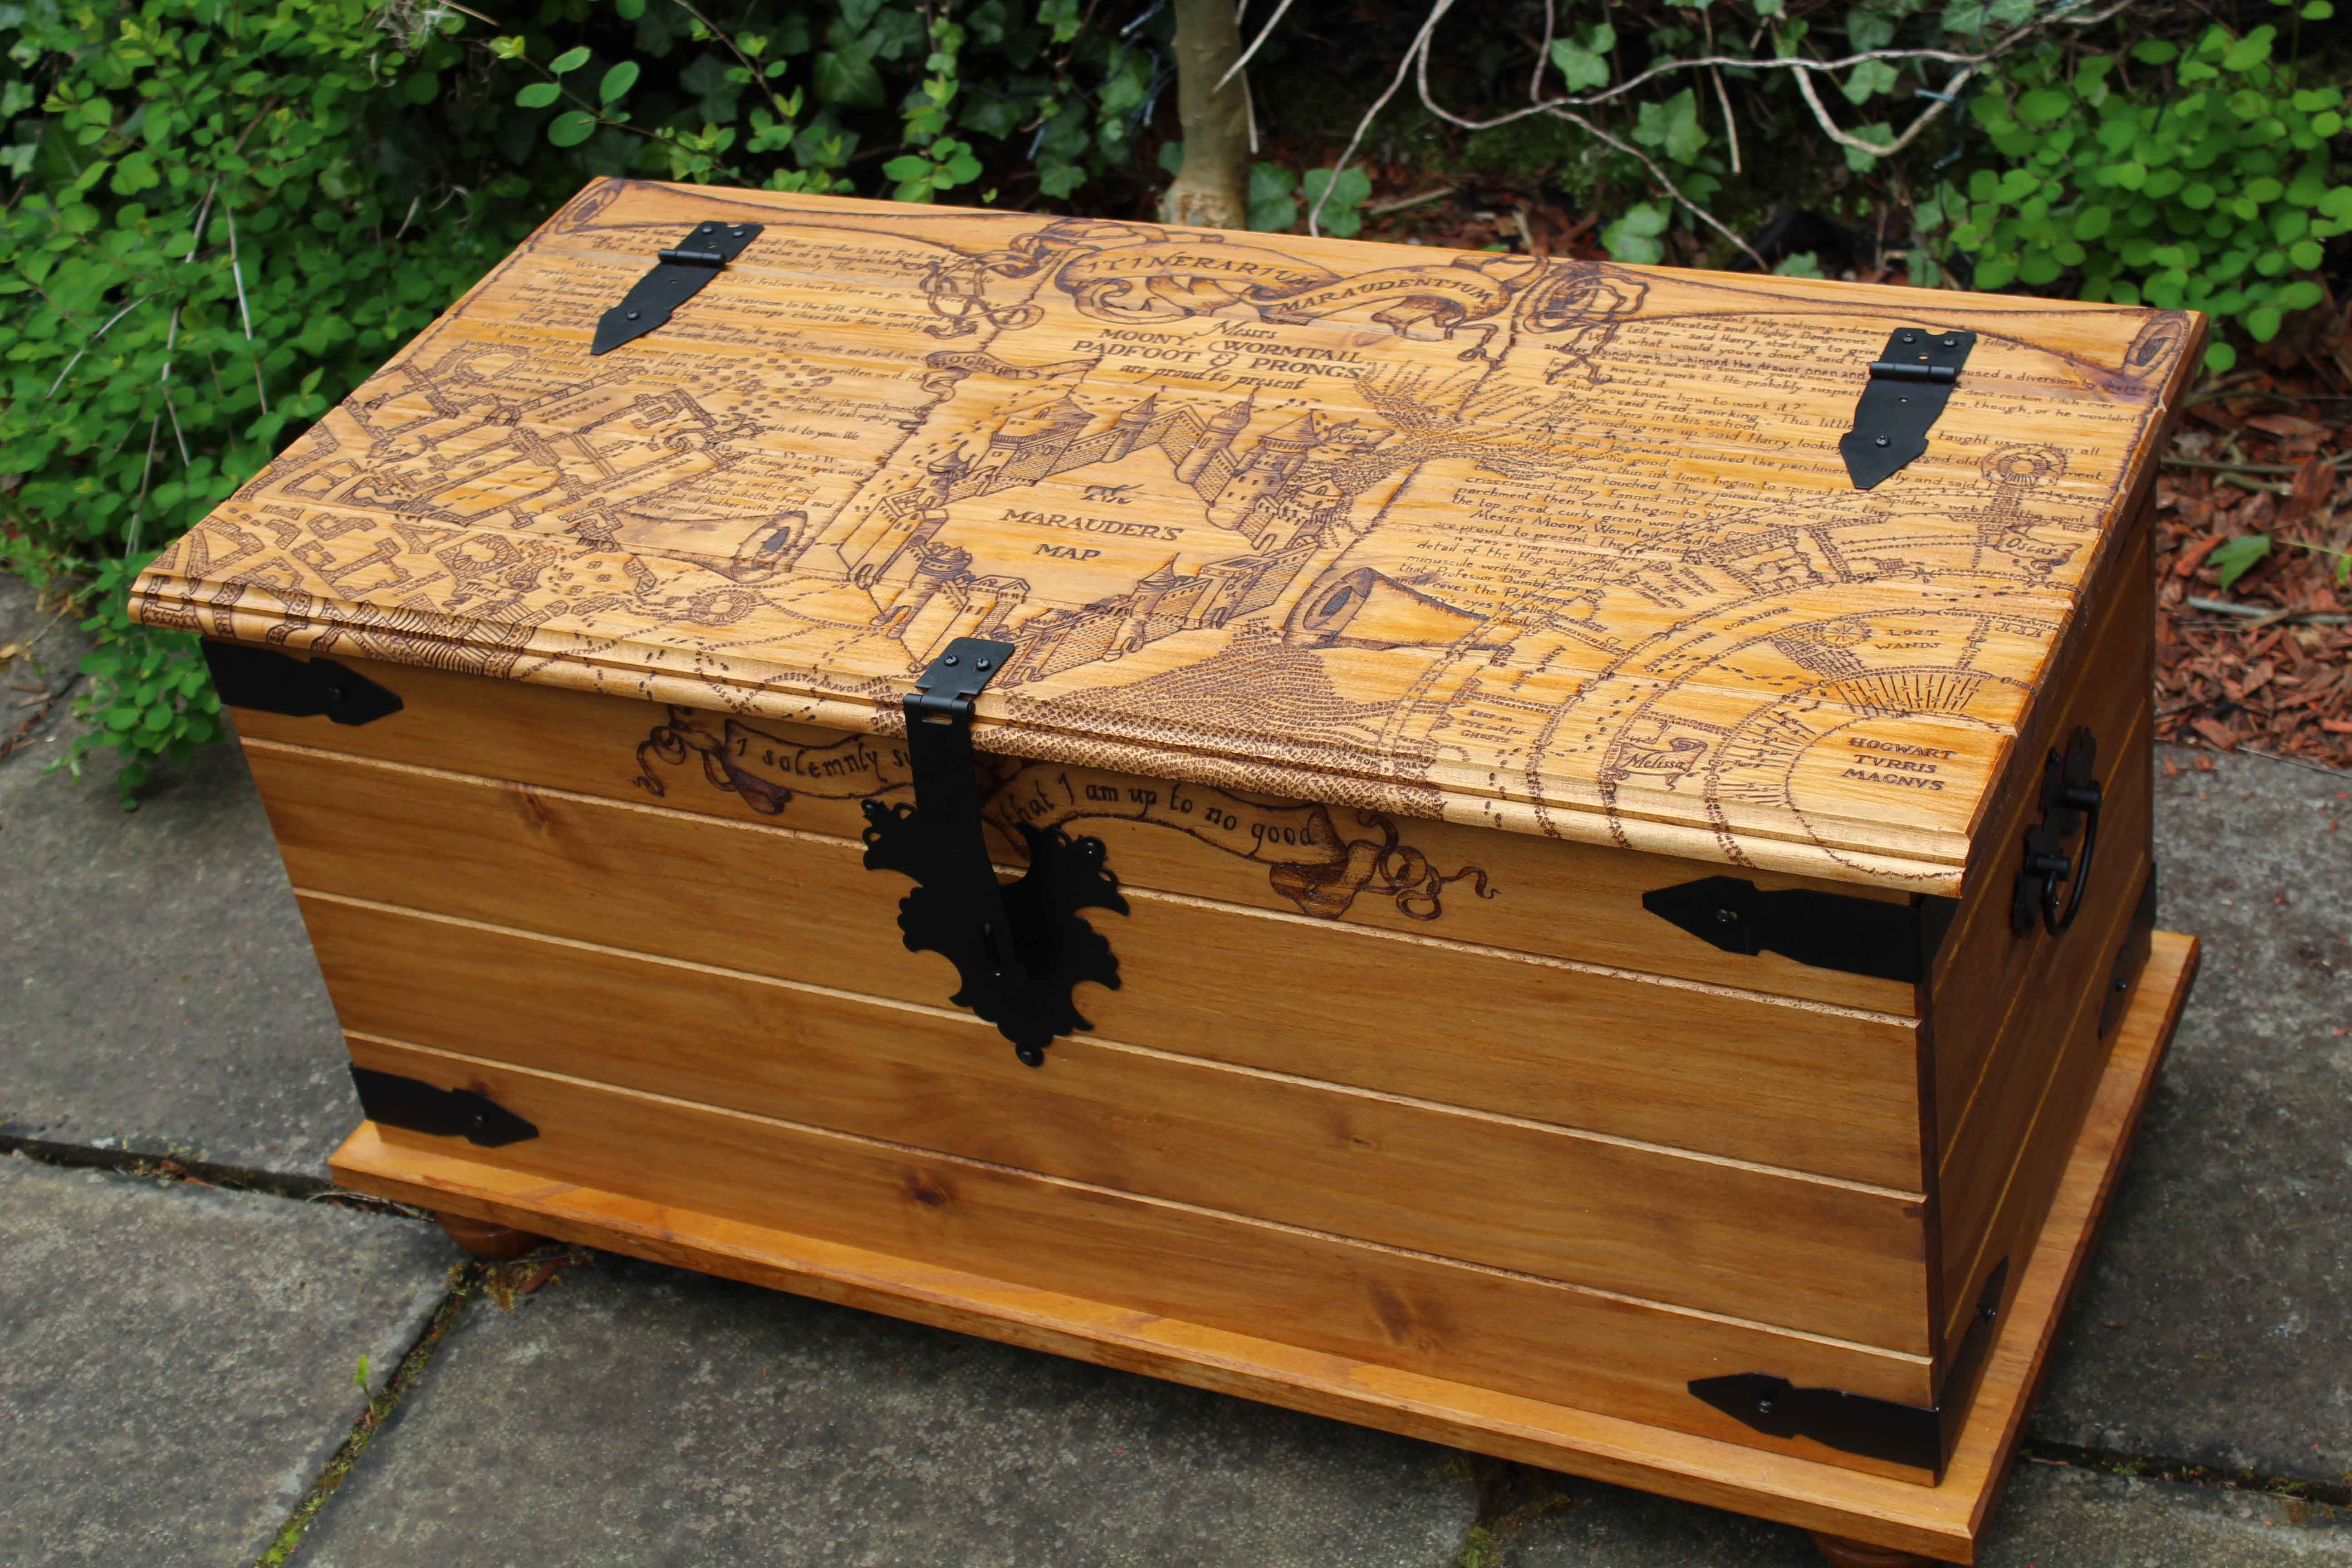 Harry Potter Coffee Table Trunk Lovely Gift For Hogwarts Fans Pine Wood Furniture Wood Diy Wood Burning [ 3456 x 5184 Pixel ]